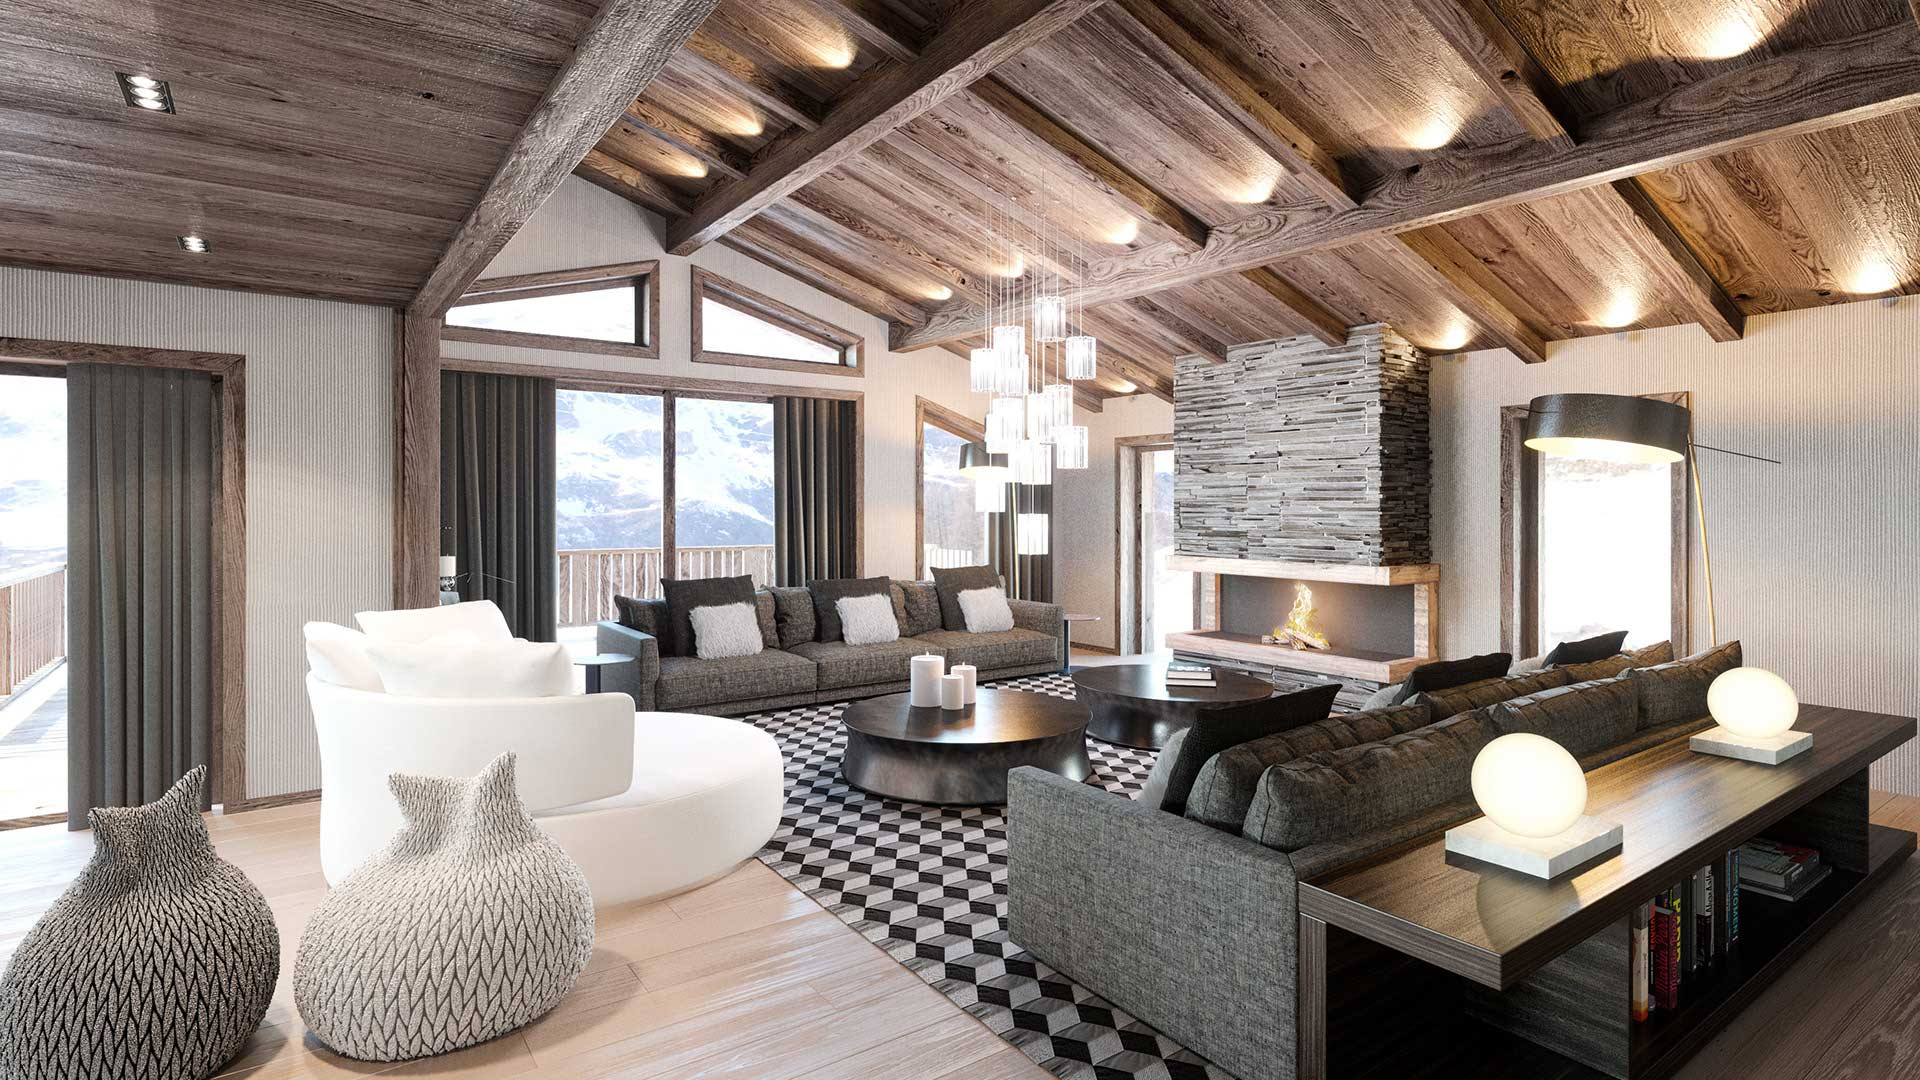 3D Living room of a luxurious chalet created by the 3D studio Valentin Studio.